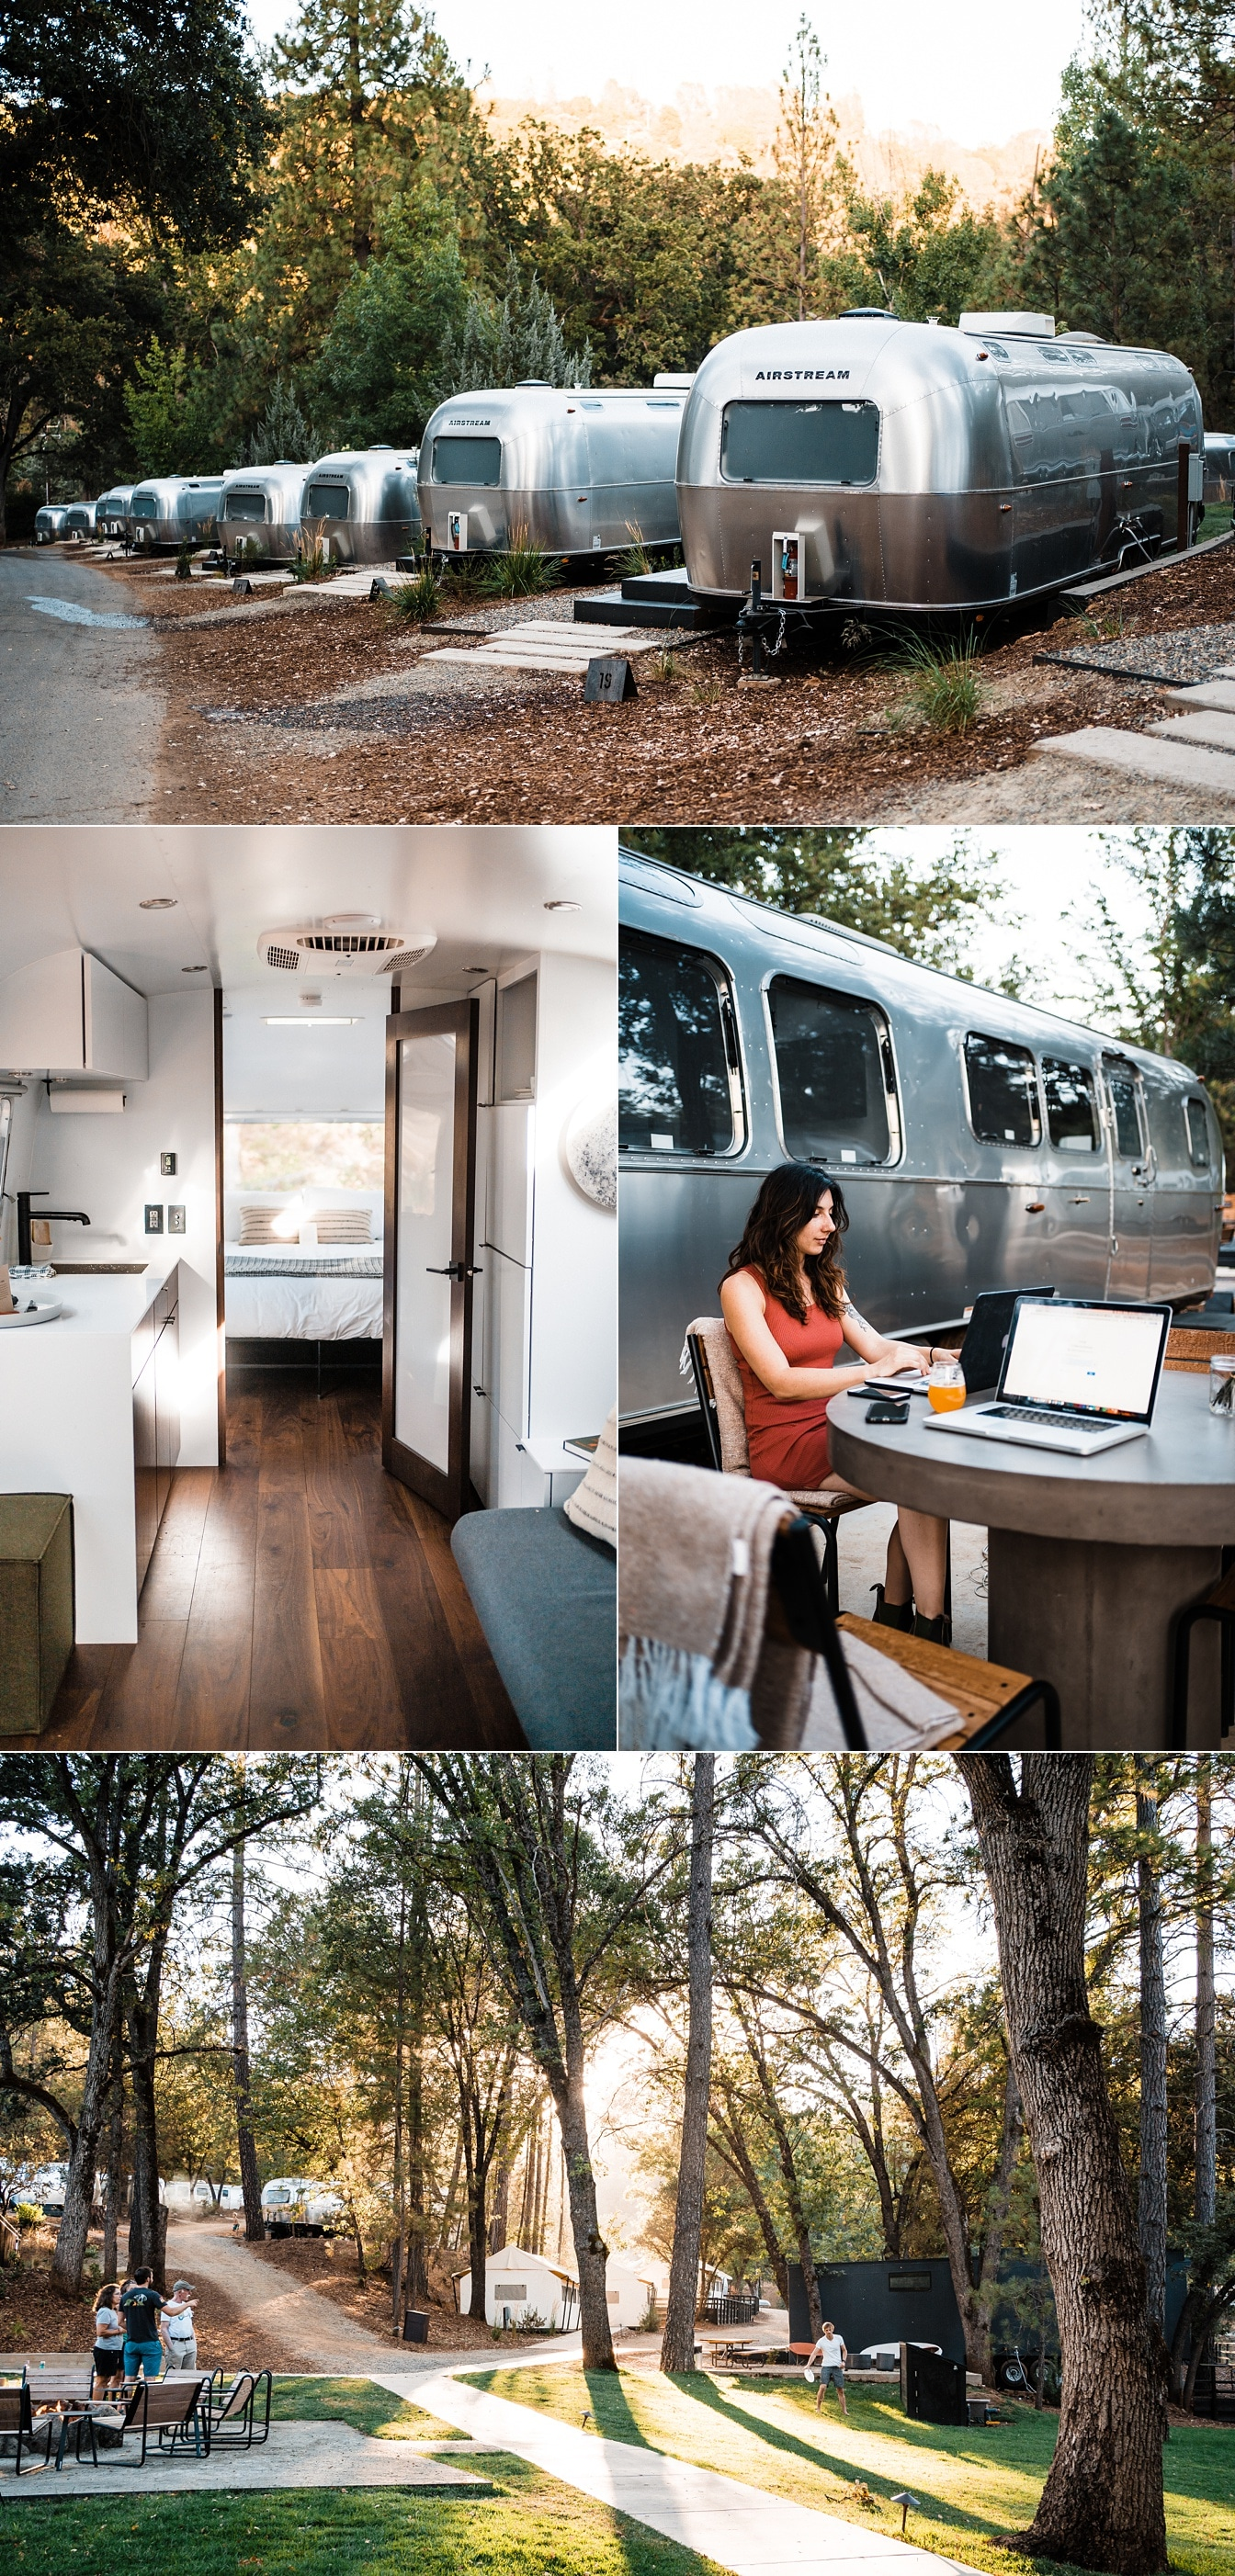 autocamp yosemite a review of an airstream campground